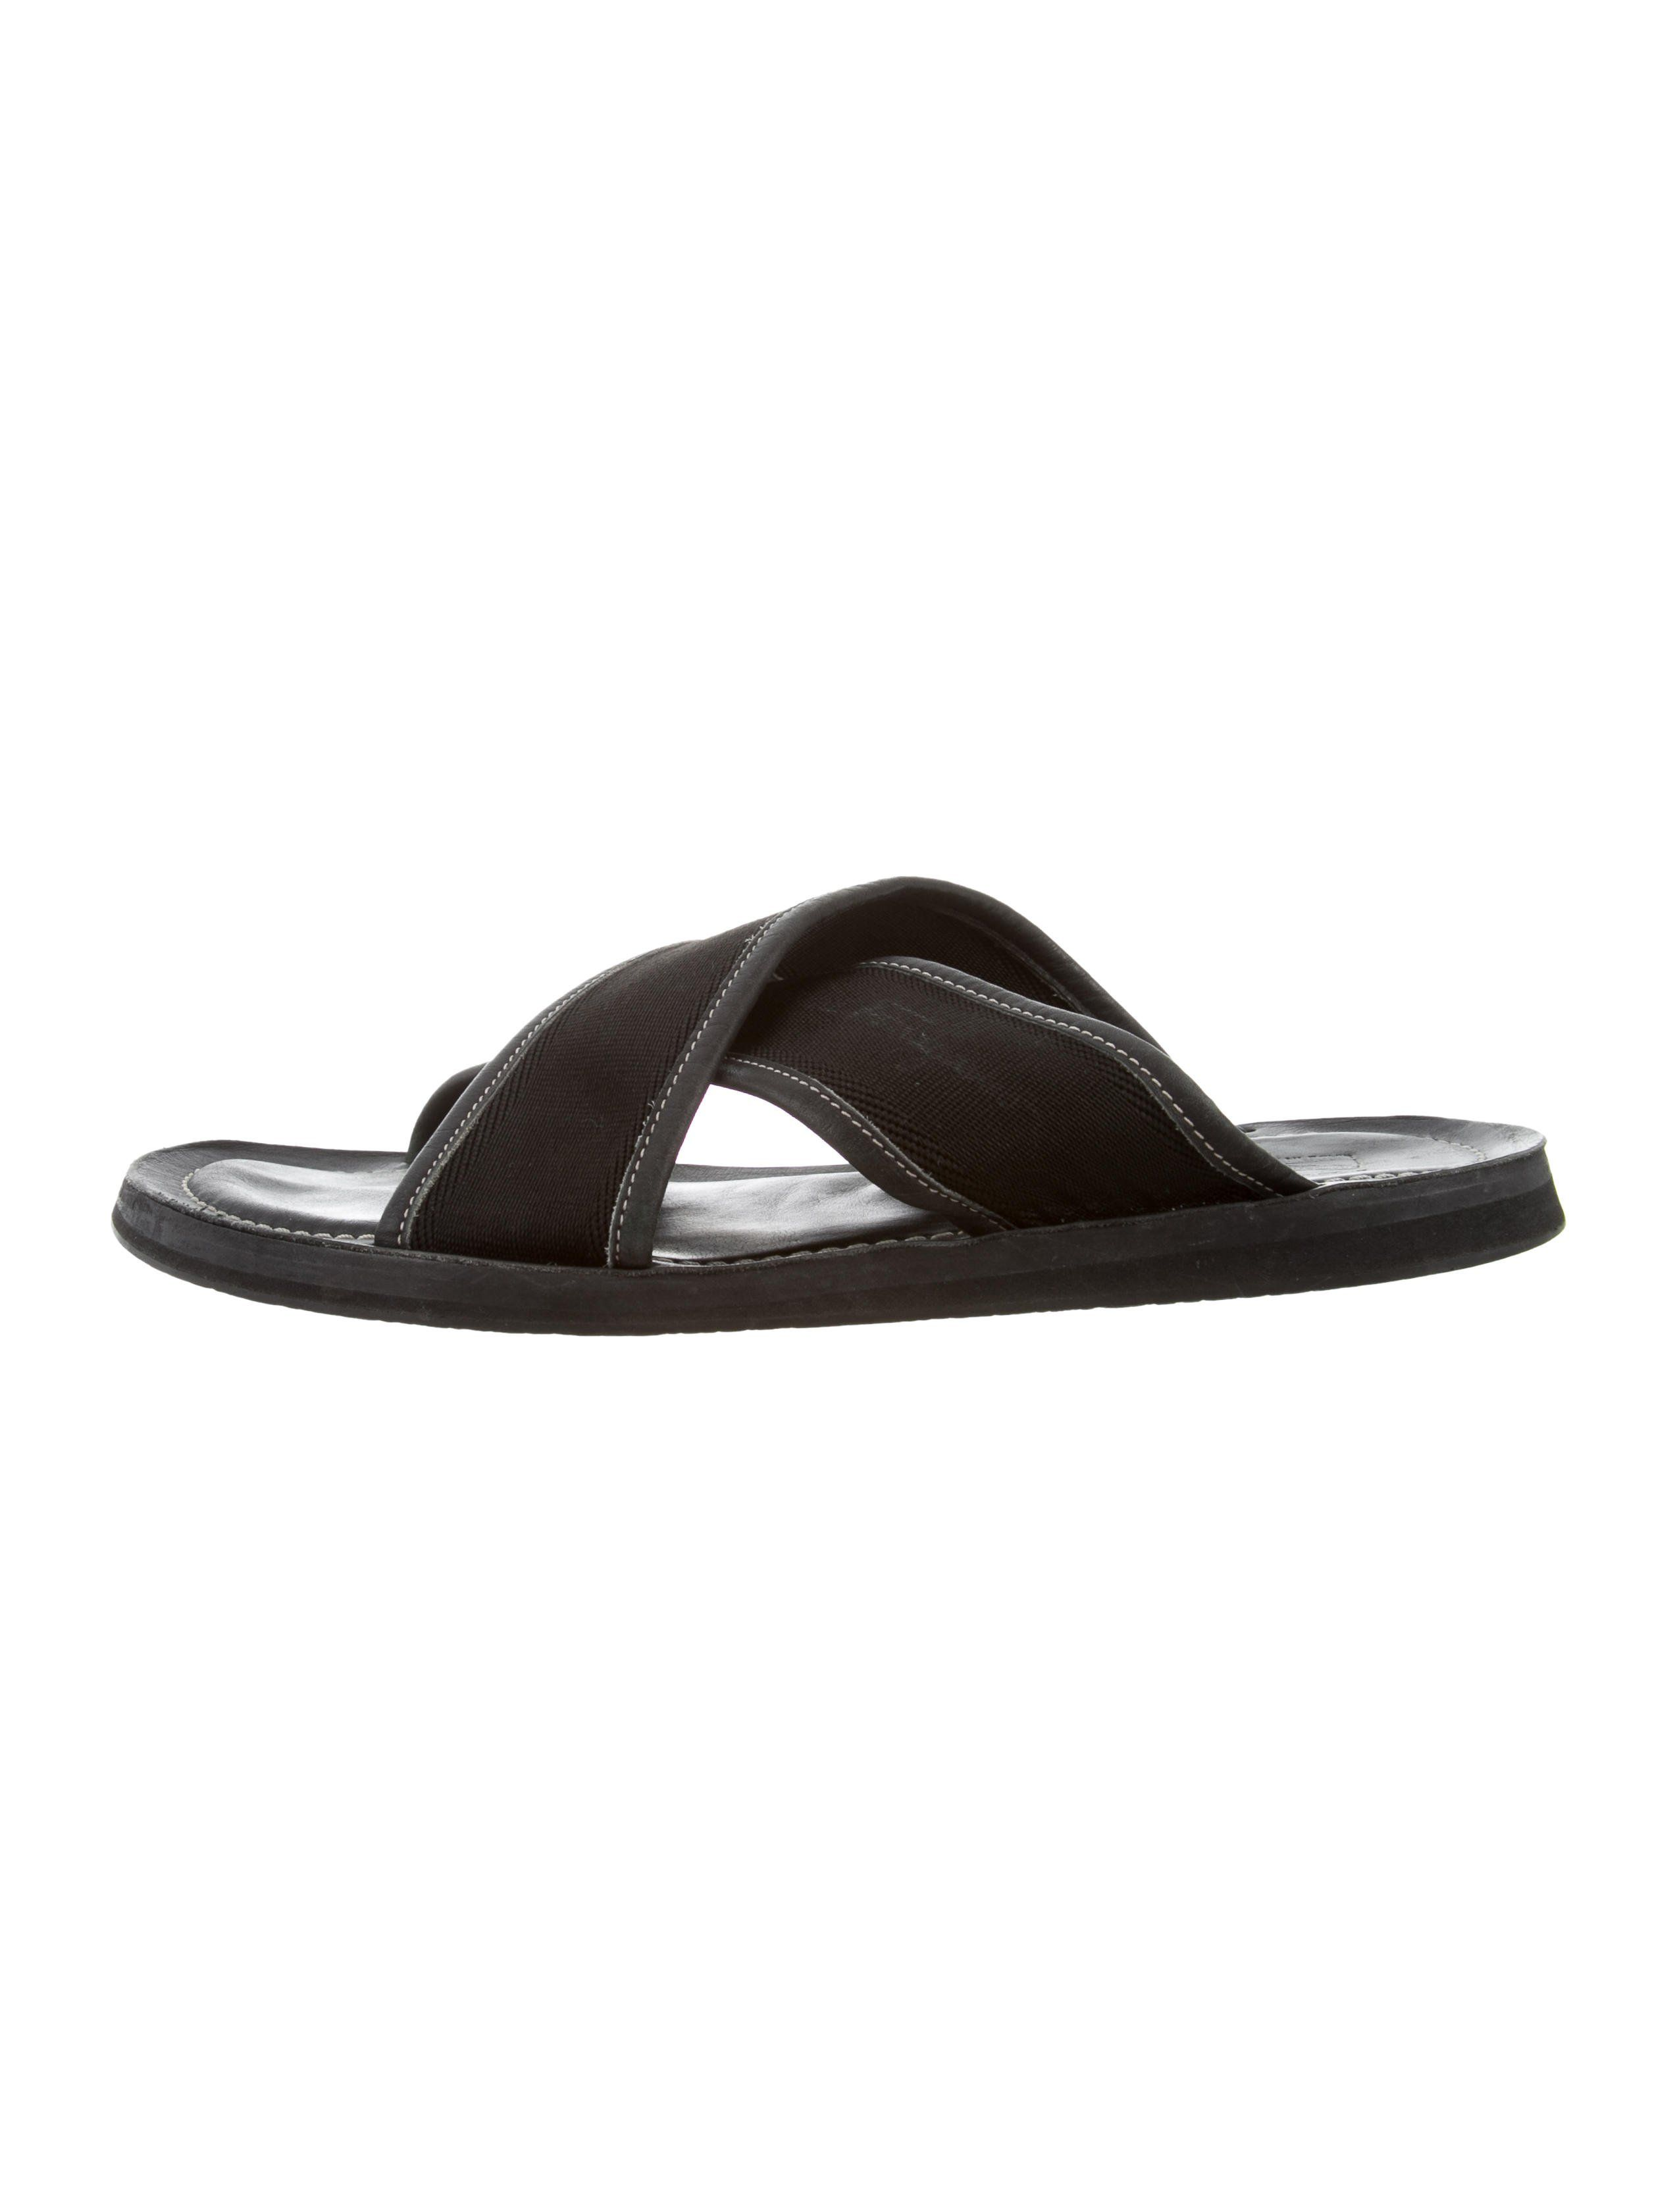 69bc4137e55d Men s black woven and leather-trimmed Salvatore Ferragamo slide sandals  with tonal stitching and rubber soles.